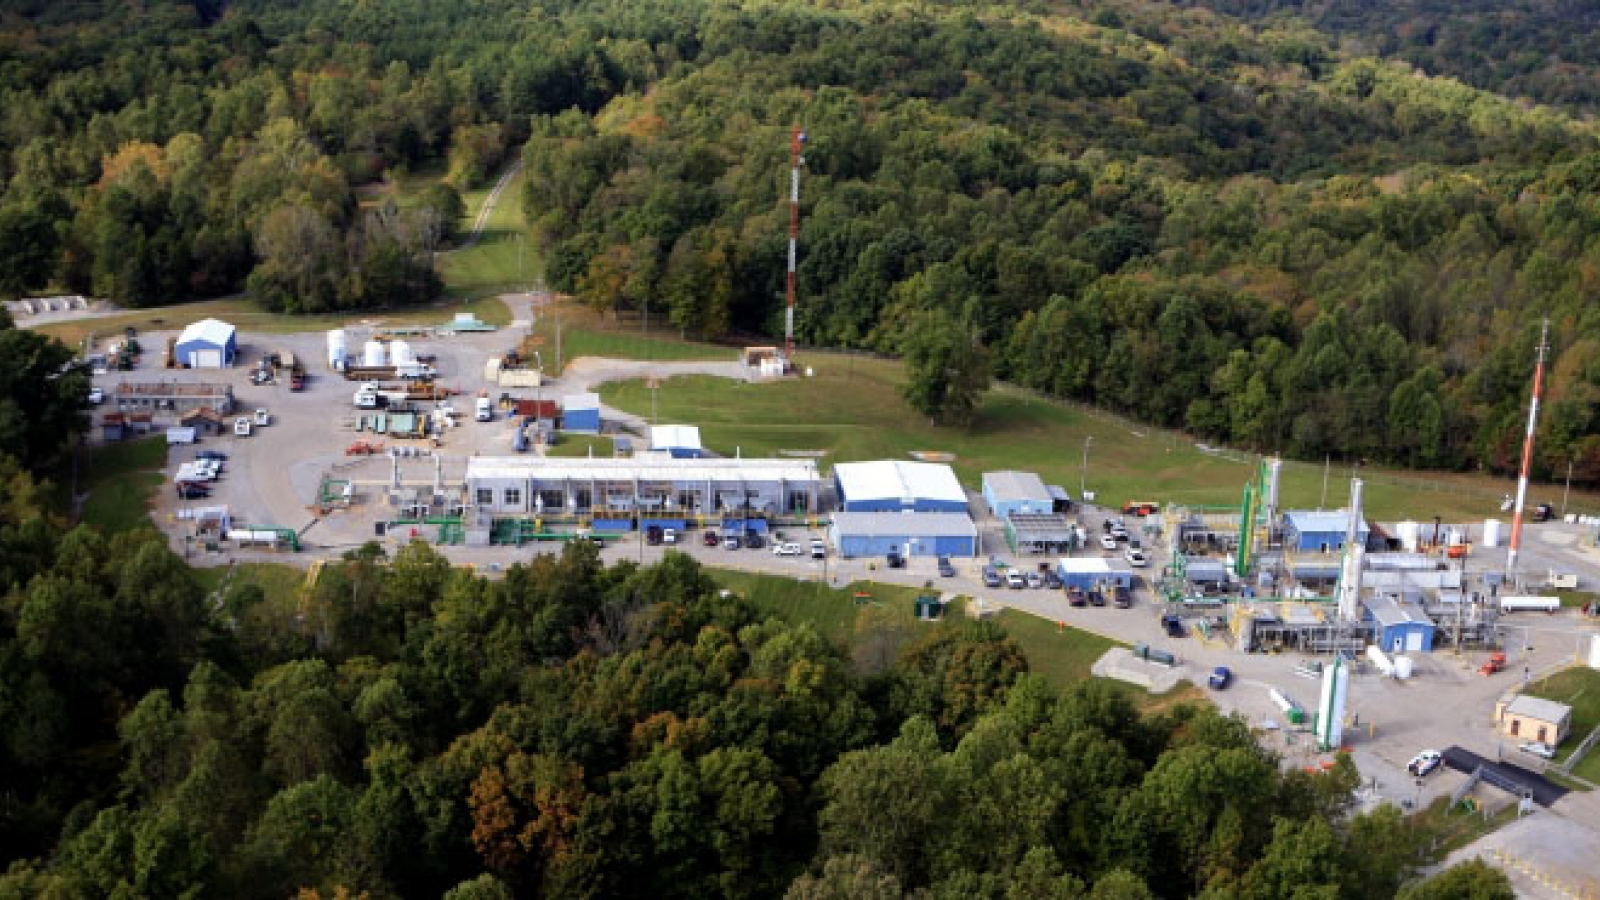 Aerial view of Muldraugh Compressor Station